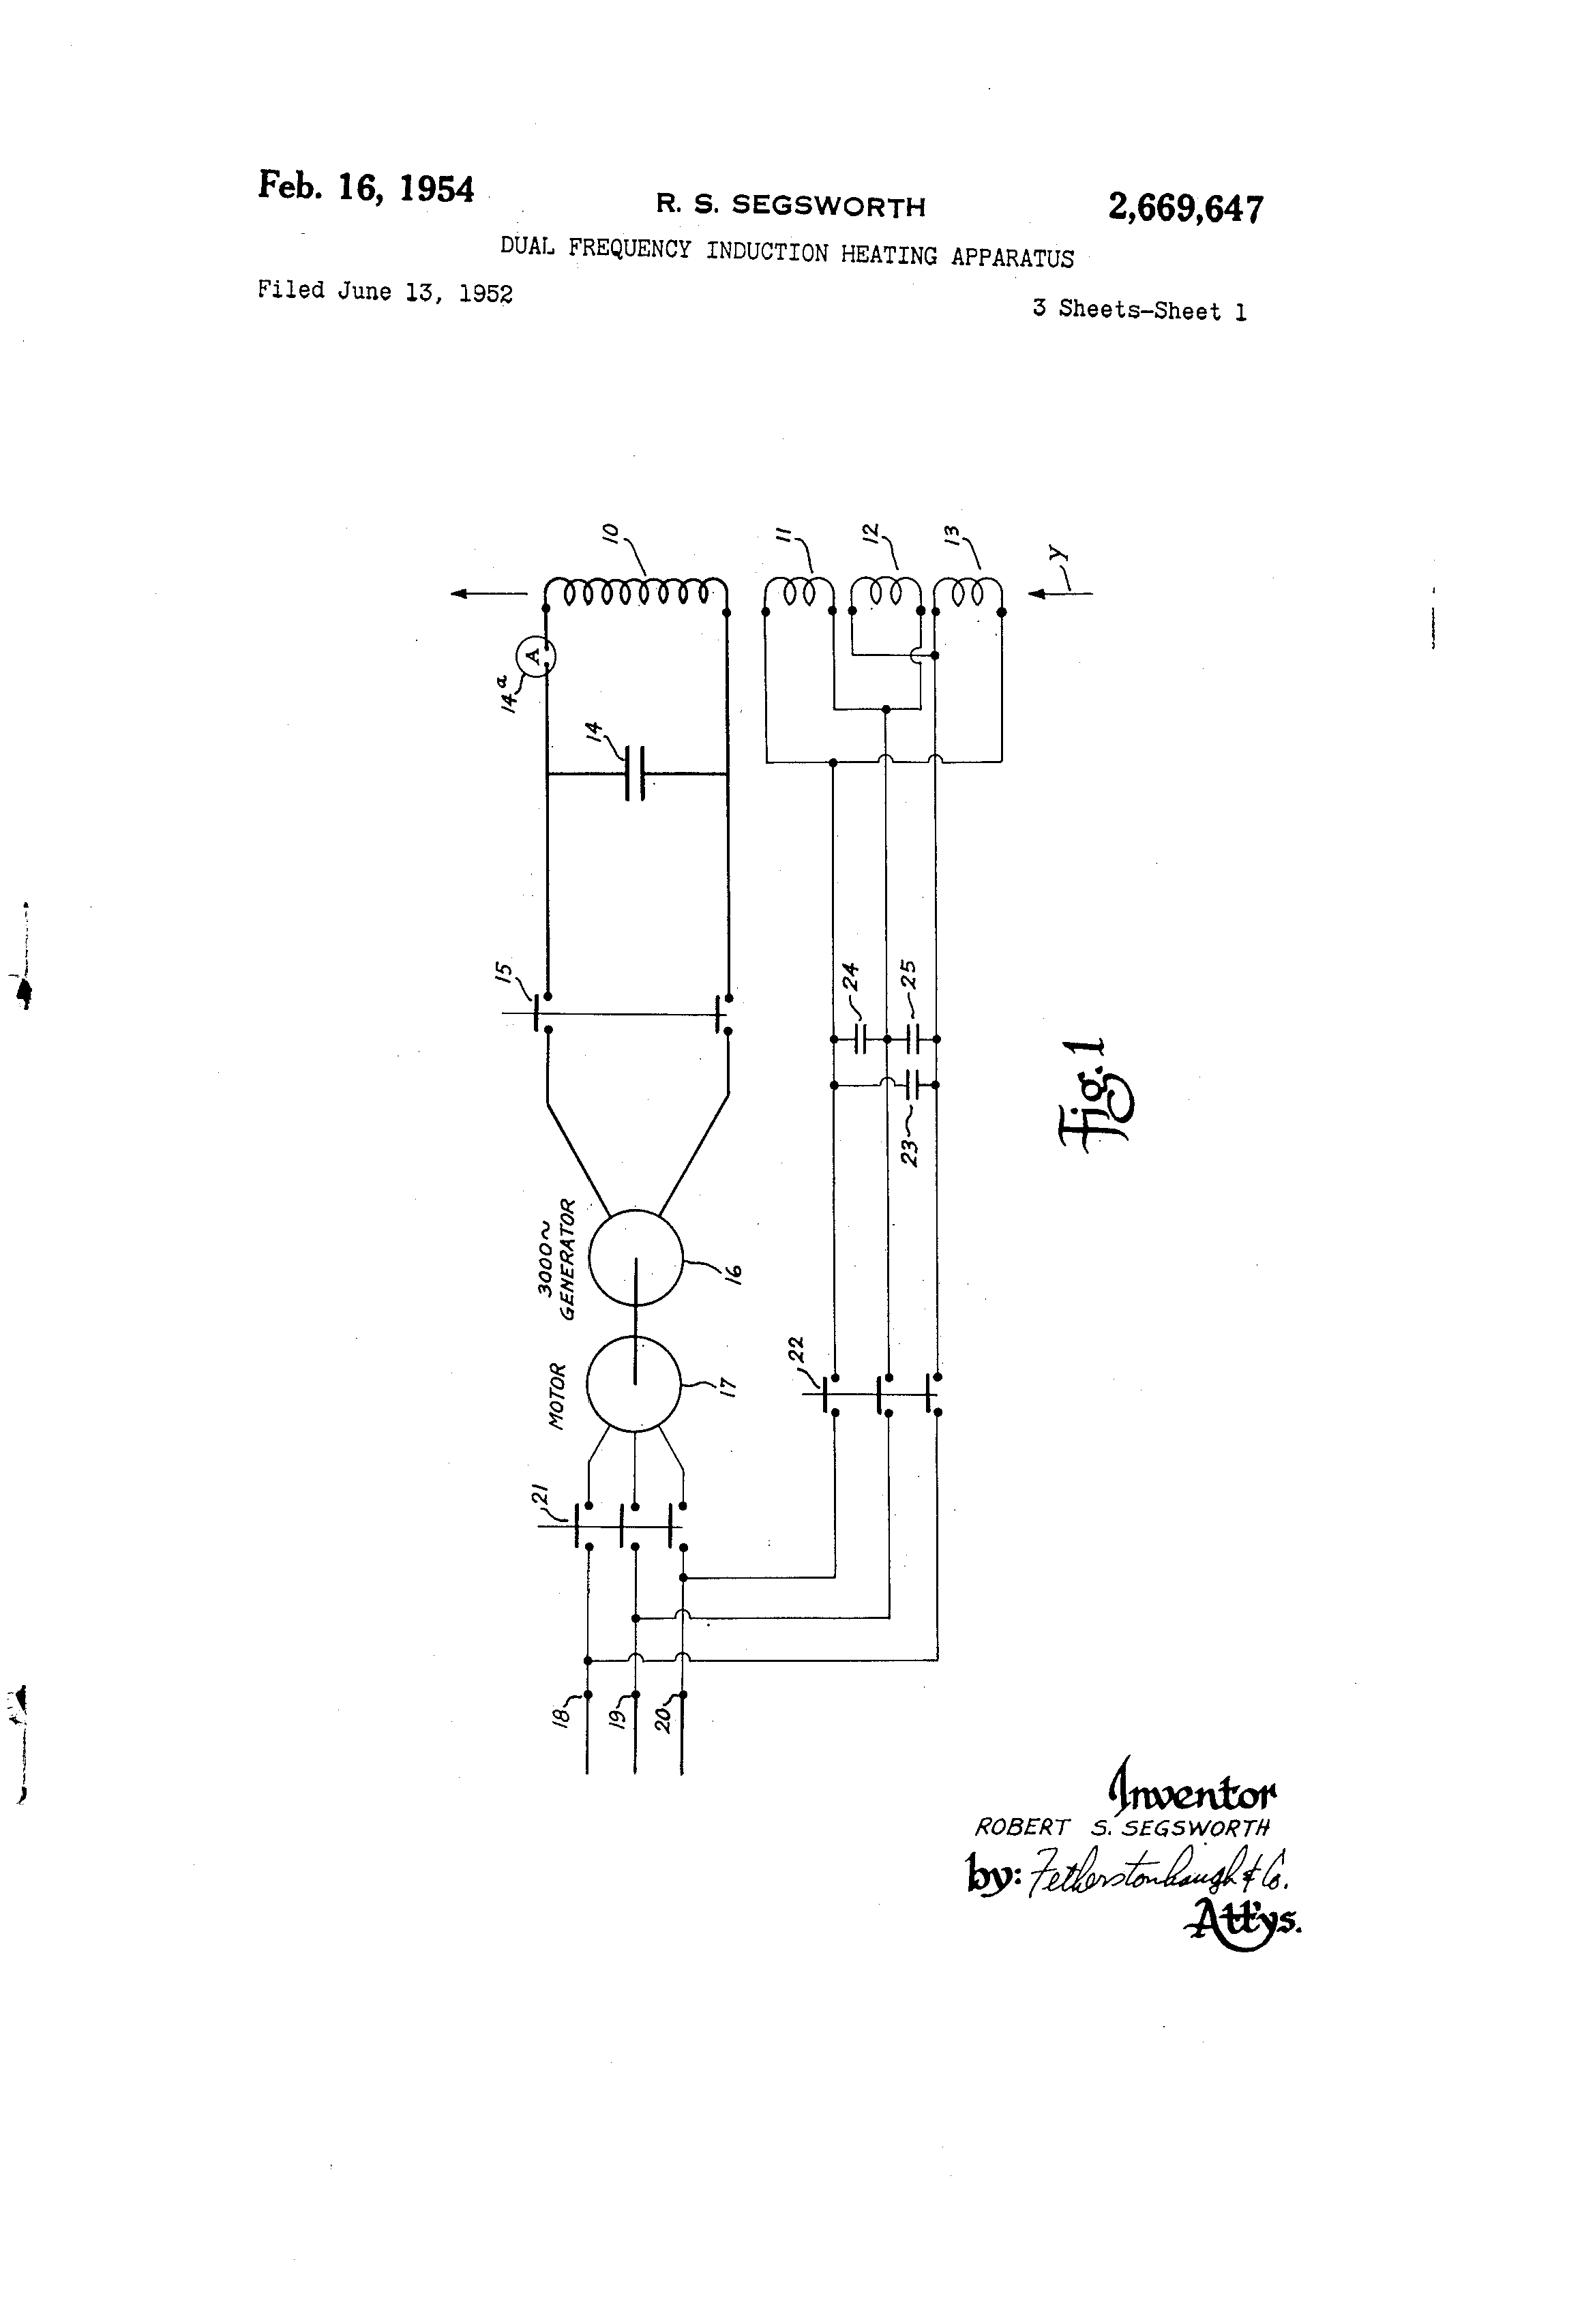 Brevet Us2669647 Dual Frequency Induction Heating Apparatus Diagram Patent Drawing